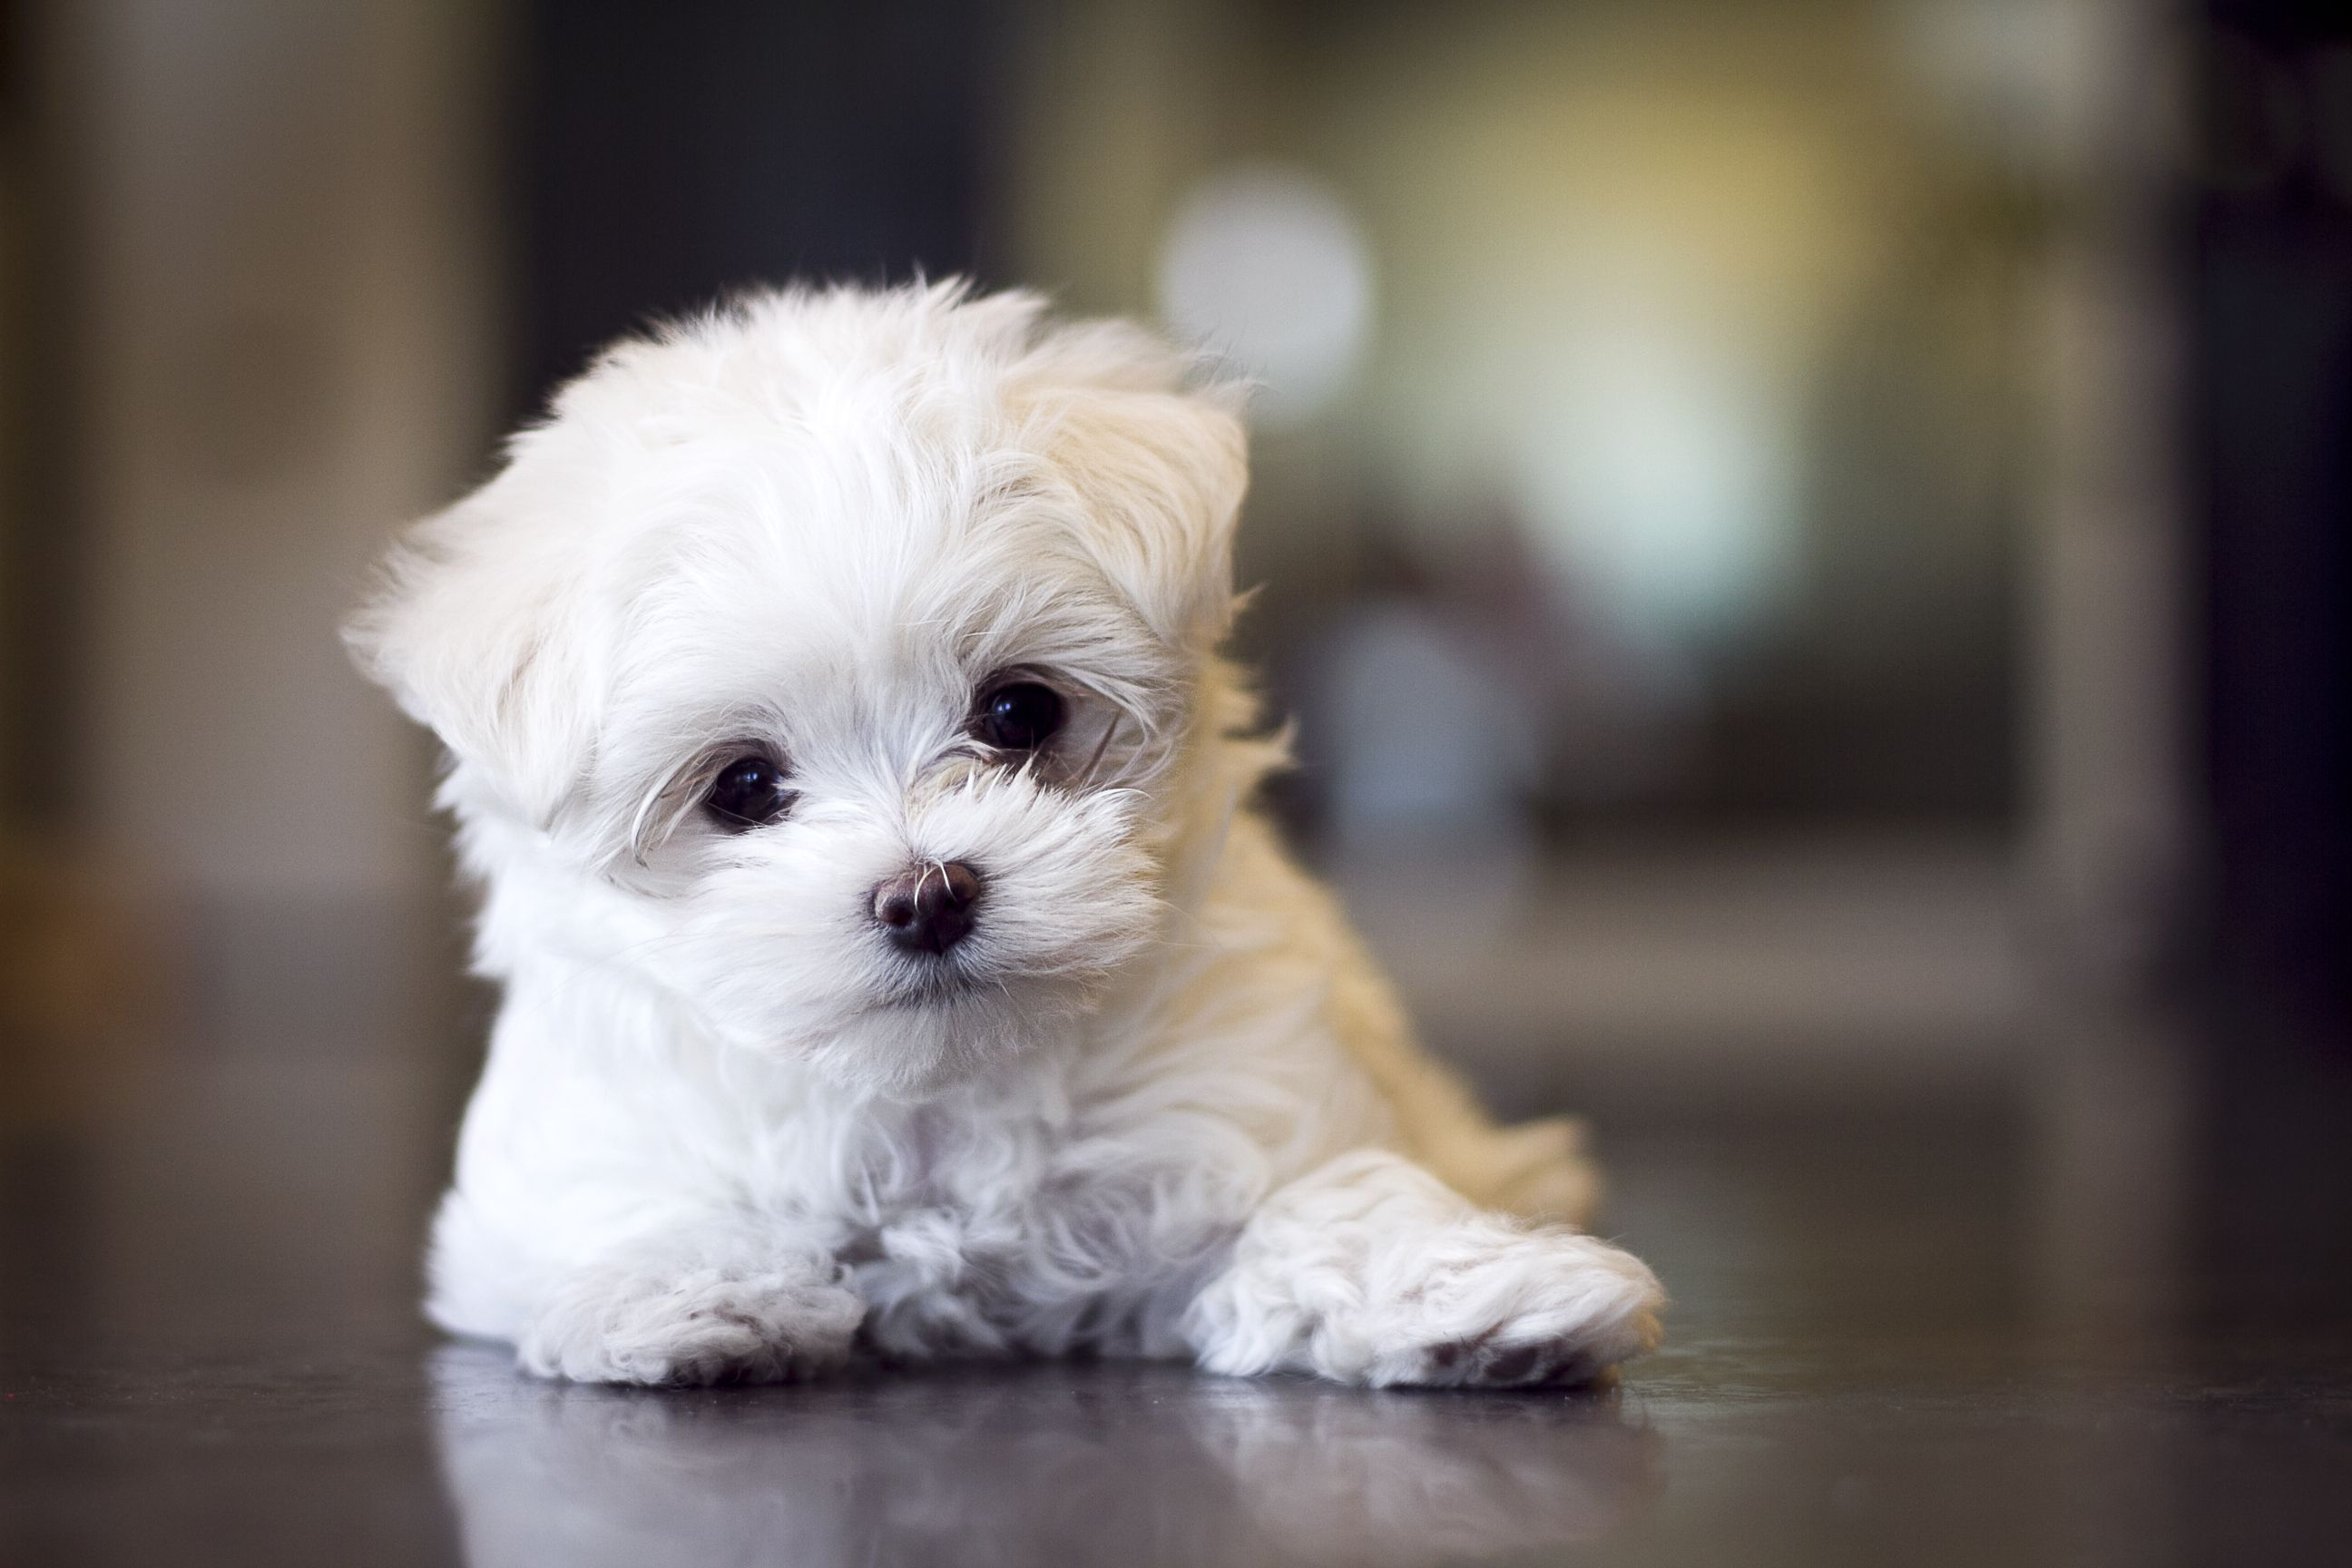 Cute Maltese Puppy My Next Dog To Get Just Hard To Find